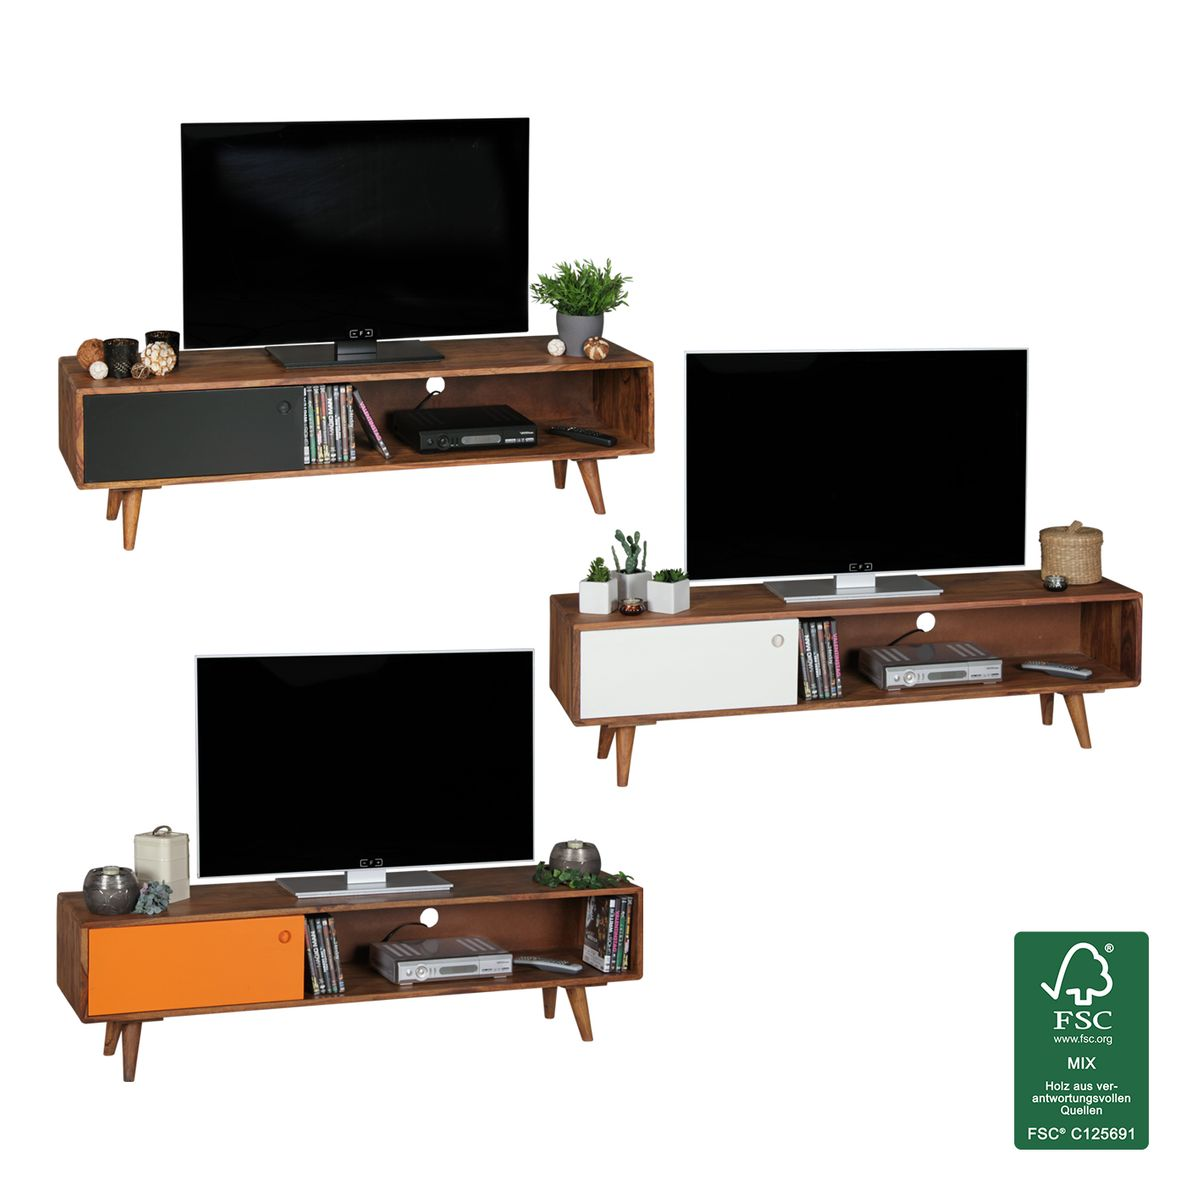 lowboard with door tv hifi shelf retro tv cabinet dark brown tv board 140 cm ebay. Black Bedroom Furniture Sets. Home Design Ideas